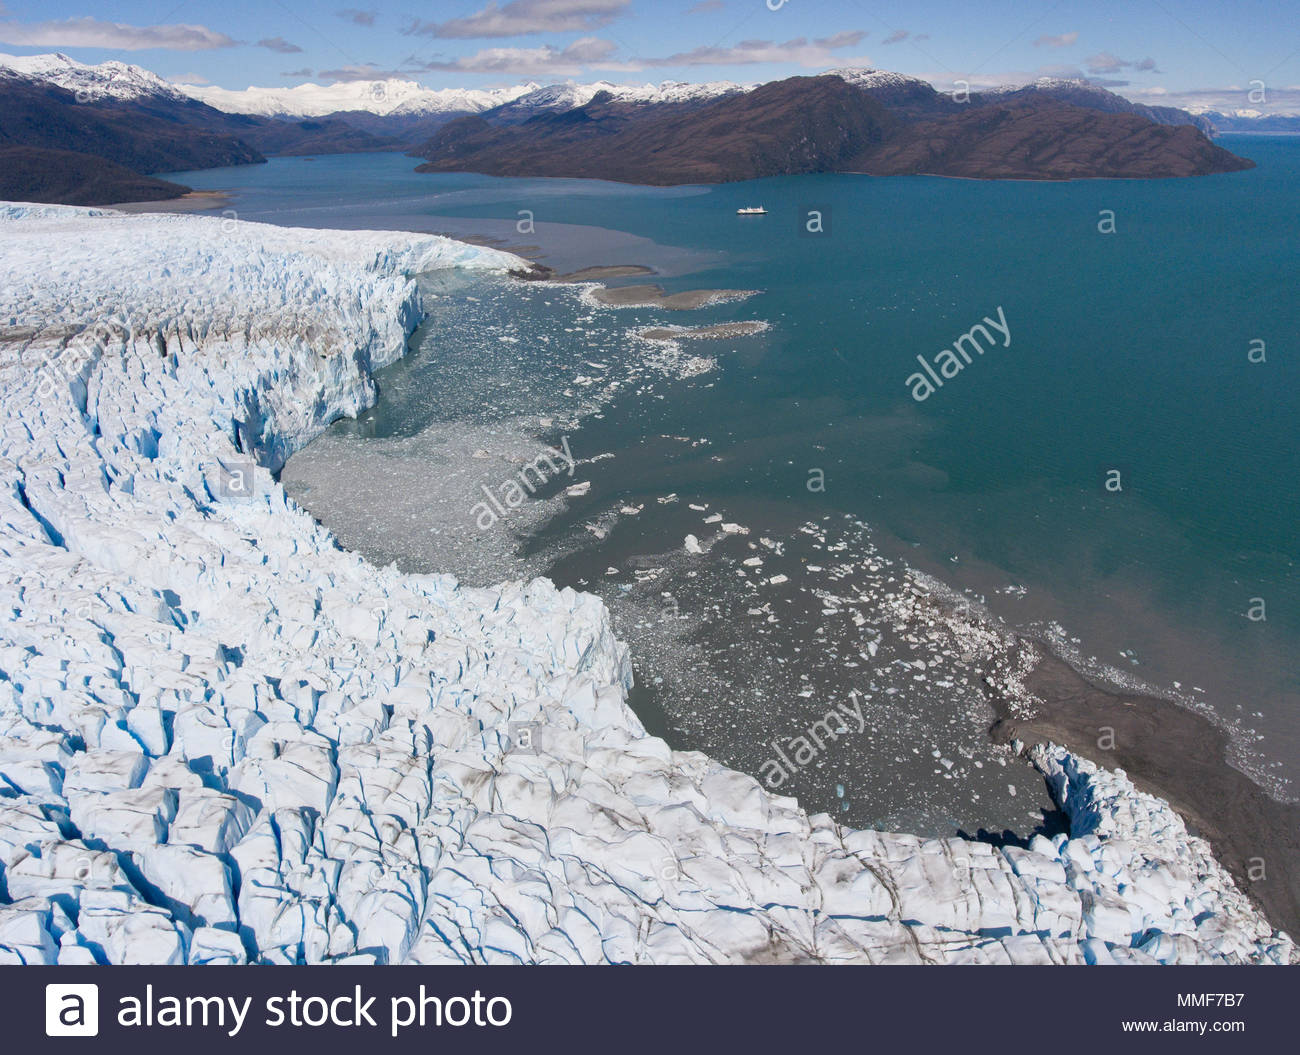 An aerial view of the Bruggen glacier in Bernardo O'Higgins National Park, Chile. - Stock Image